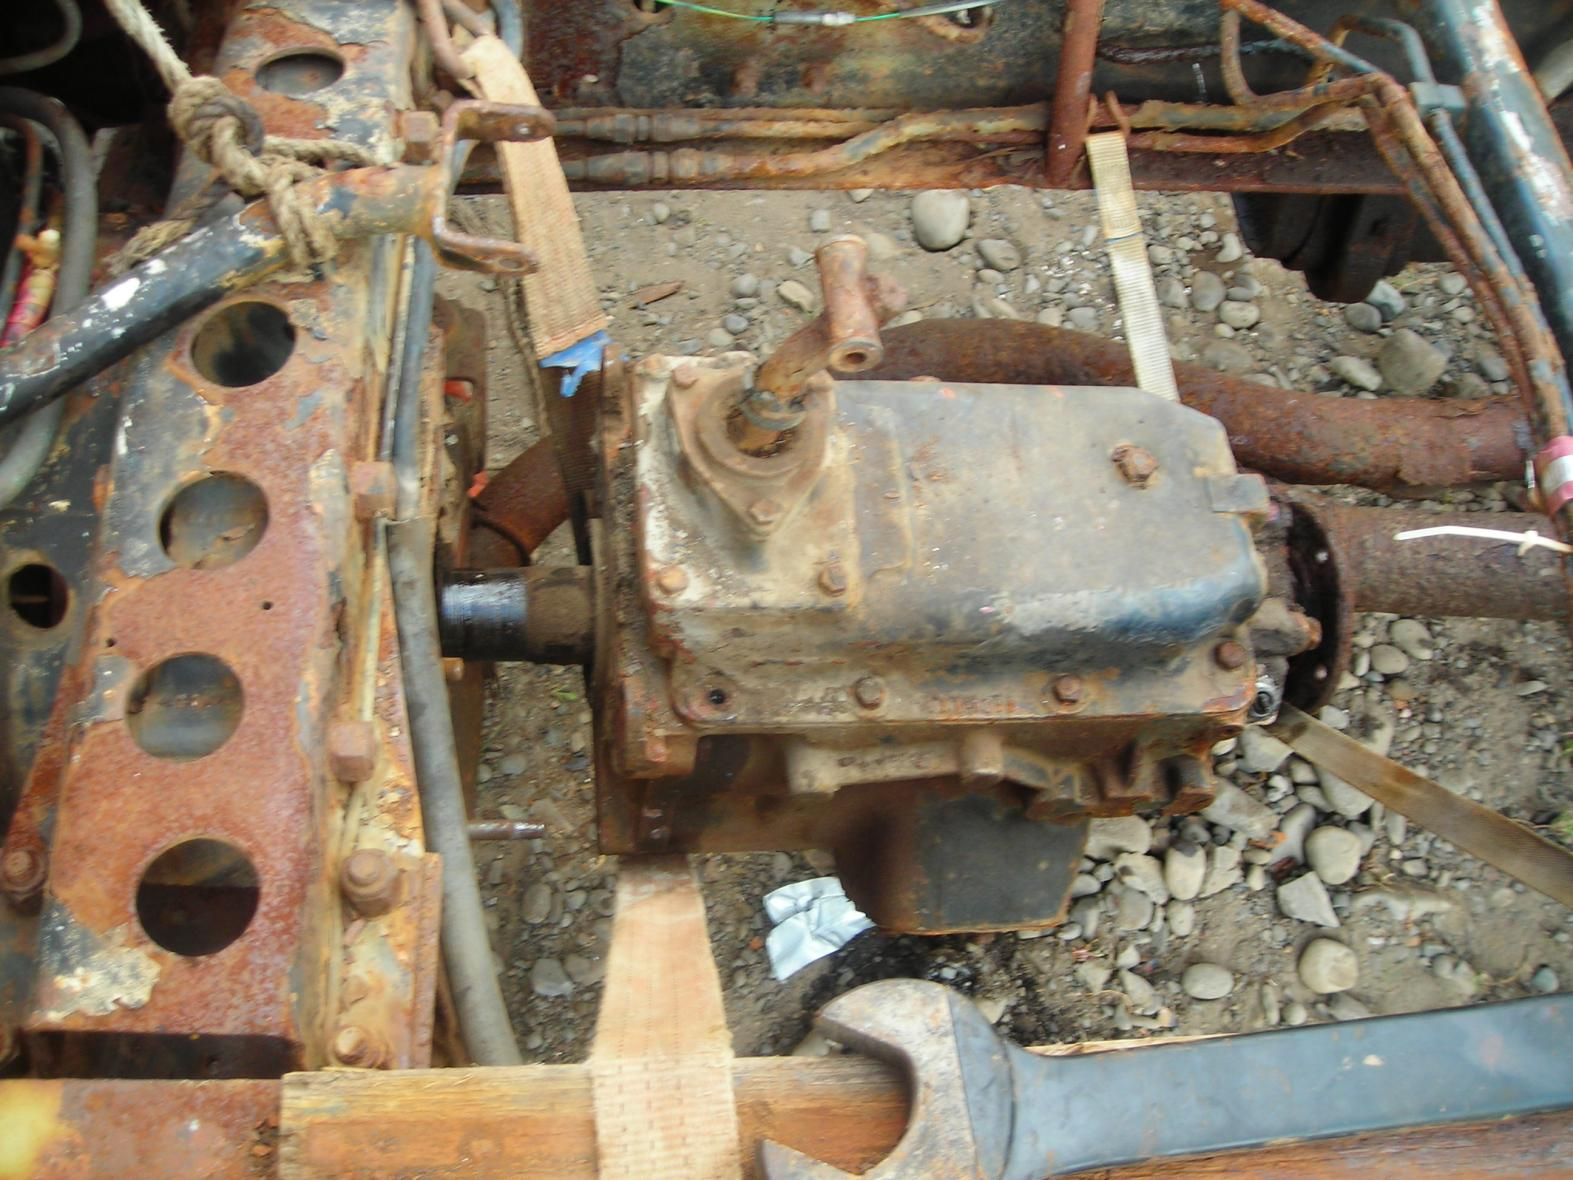 Bedford TK gearbox in a MK - I may be stupid, but       - HMVF